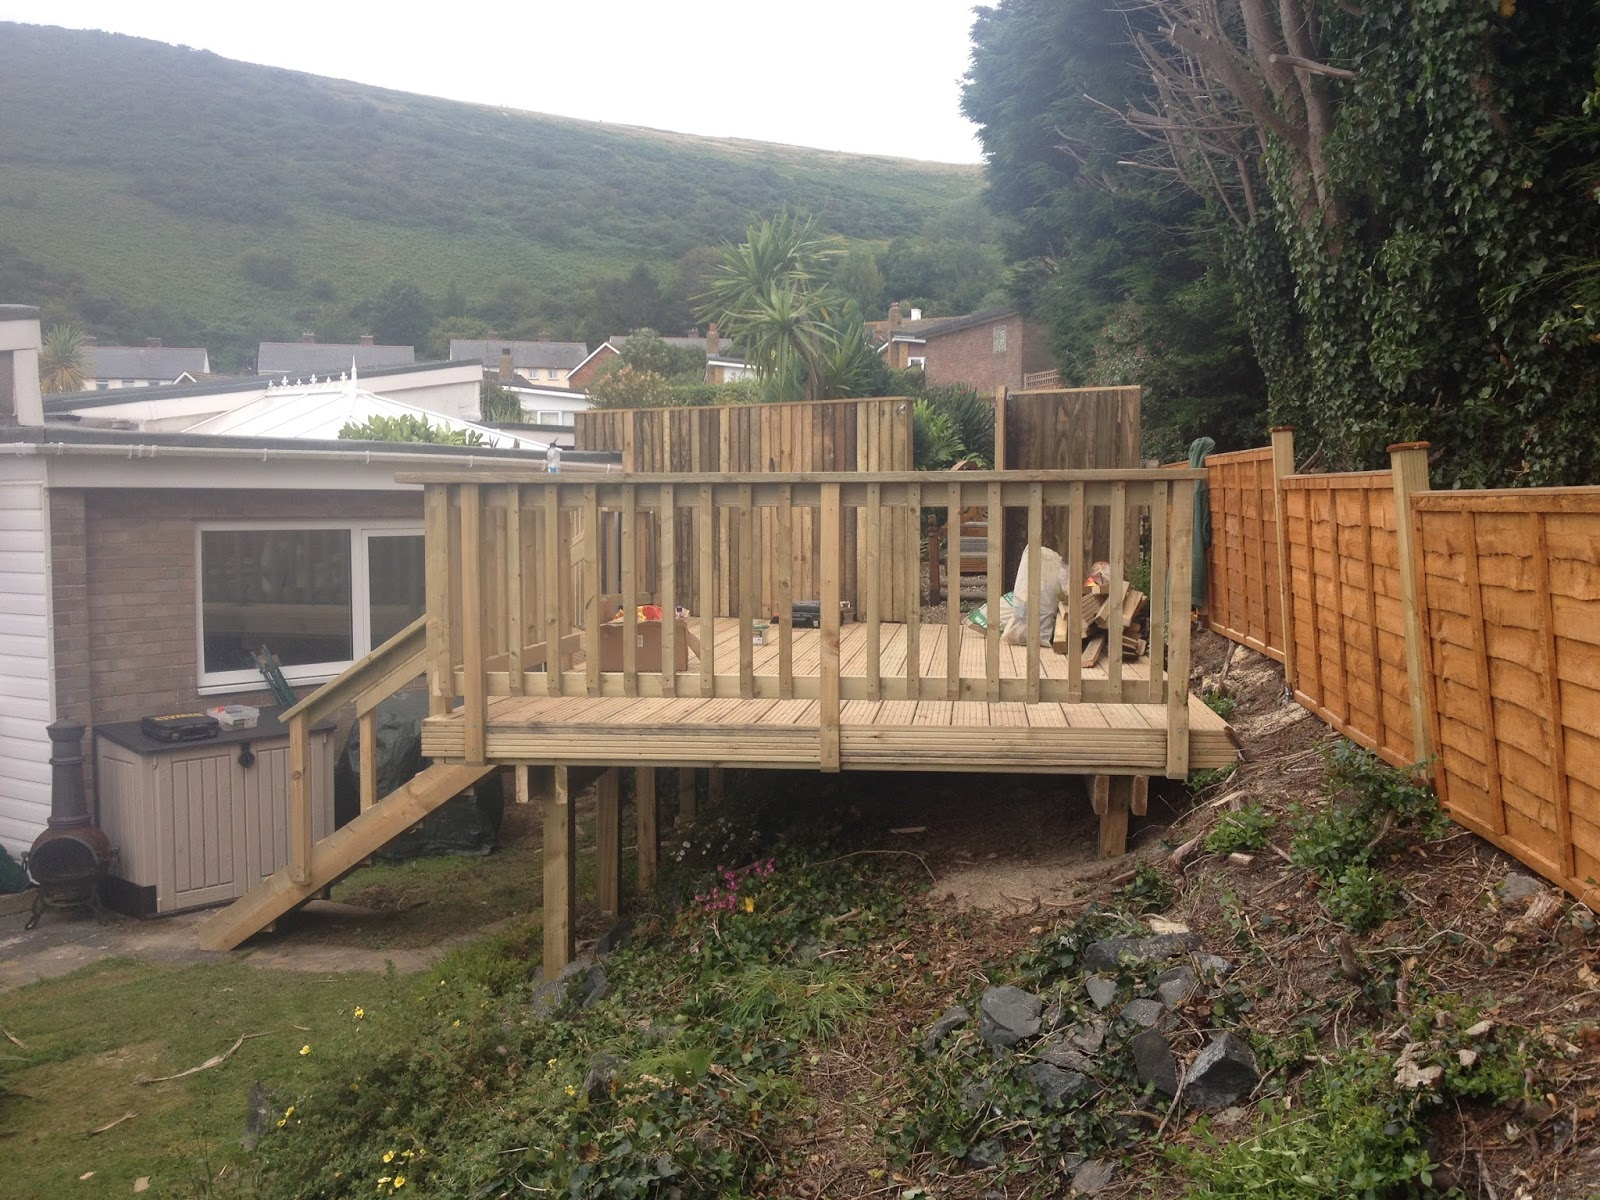 Garden carpentry timber decking design and build our for Timber decking garden designs